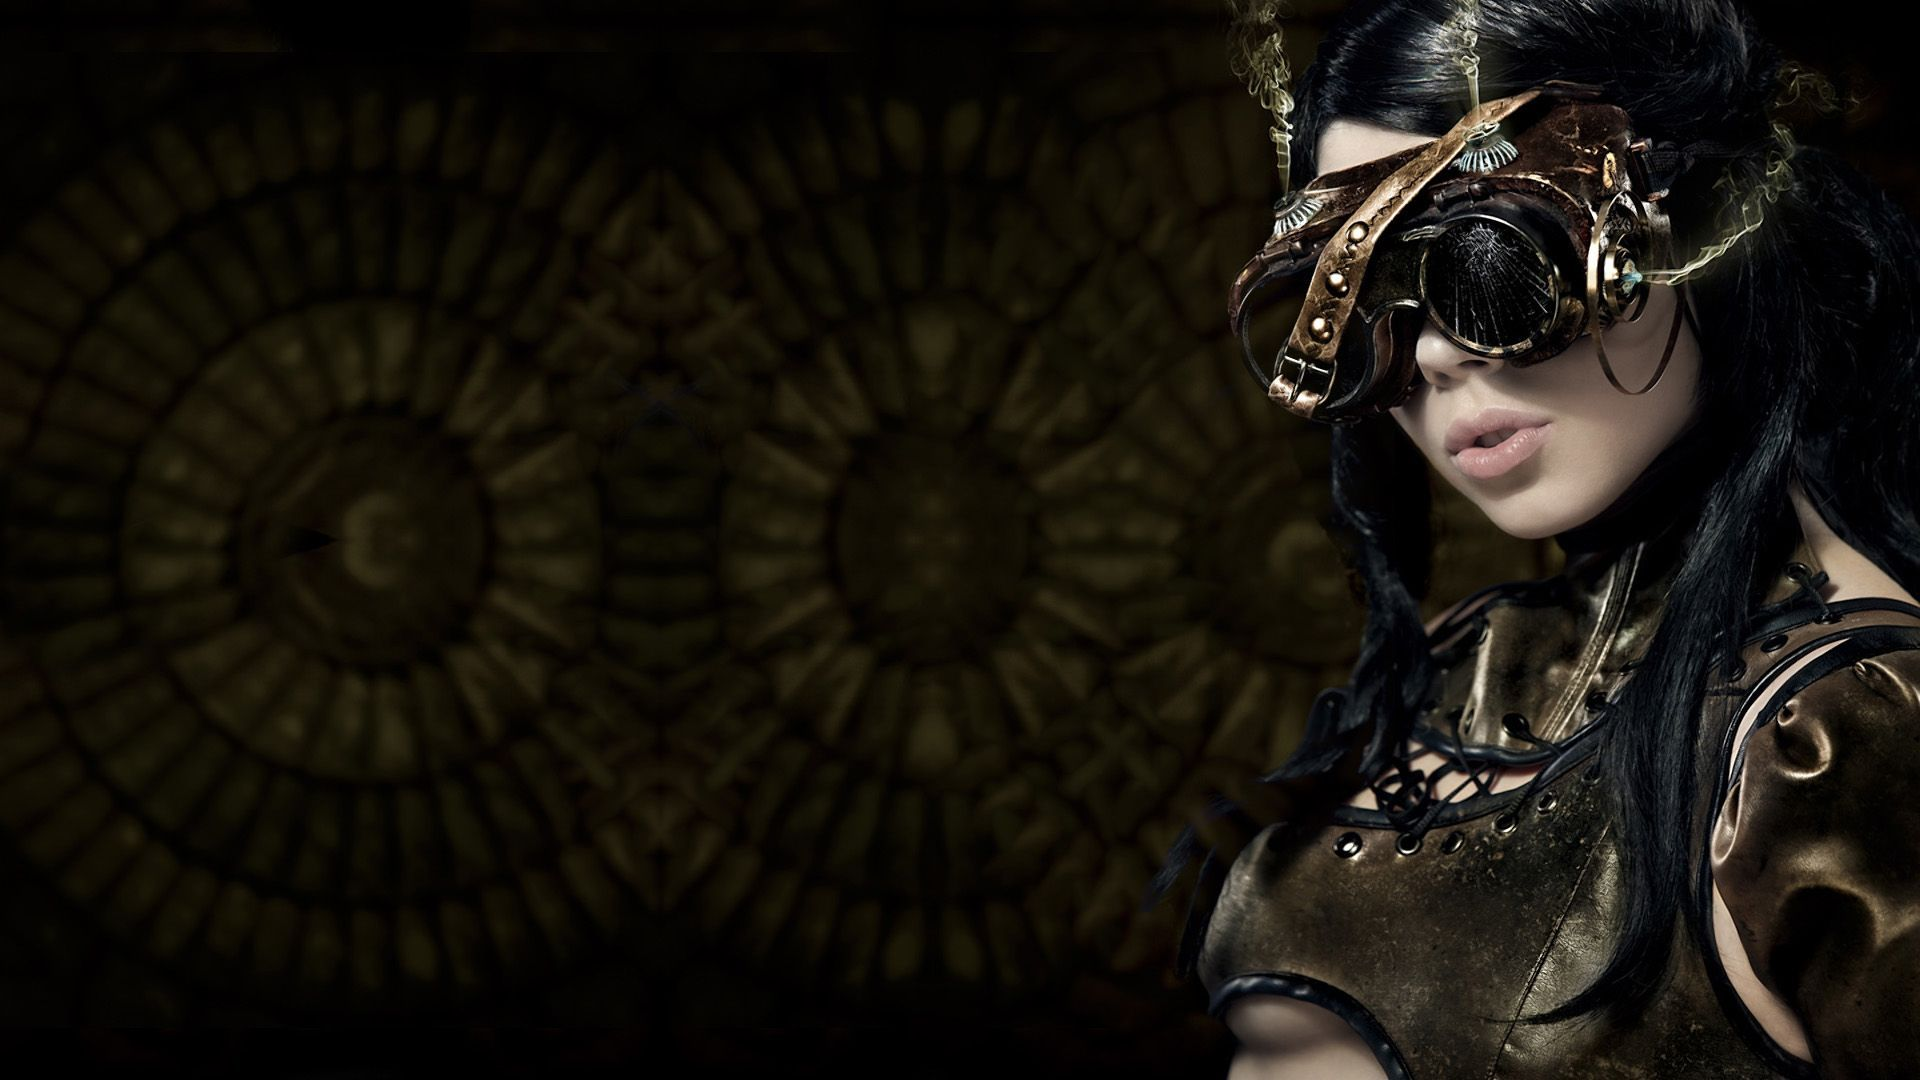 1920x1080 - Steampunk Wallpapers 8